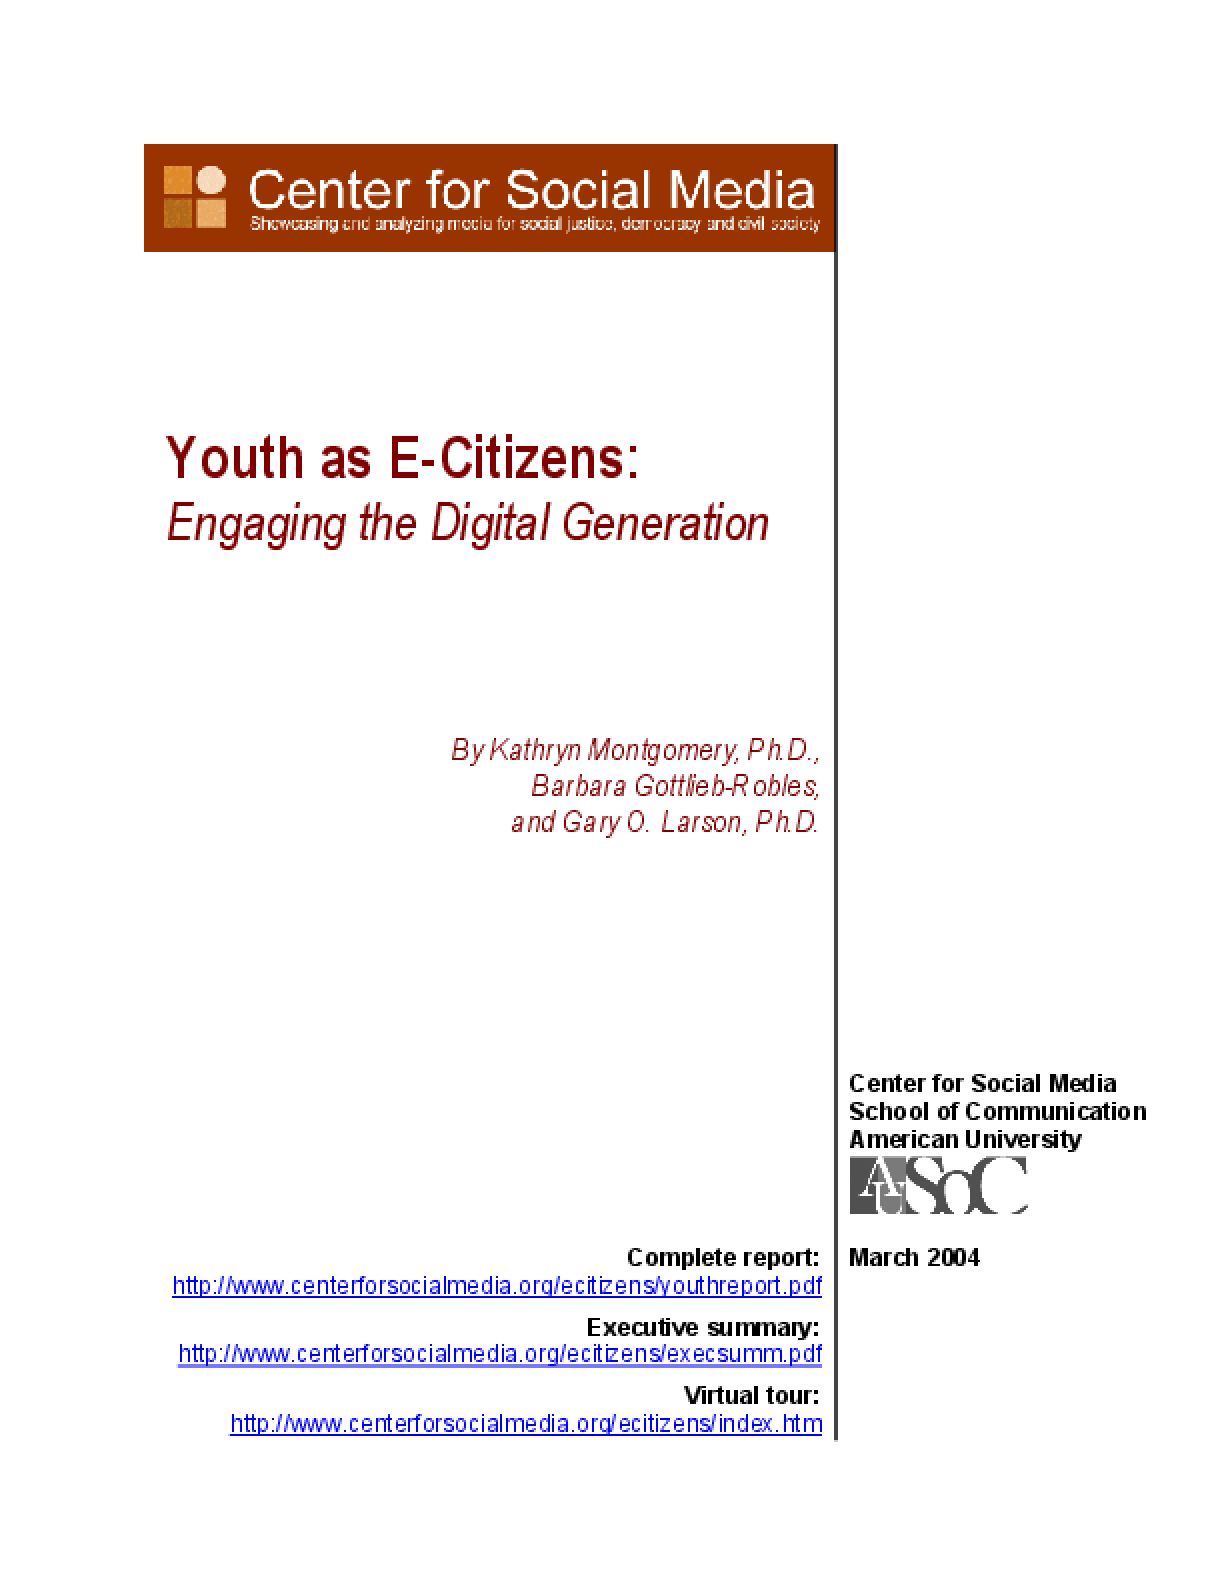 Youth as E-Citizens: Engaging the Digital Generation